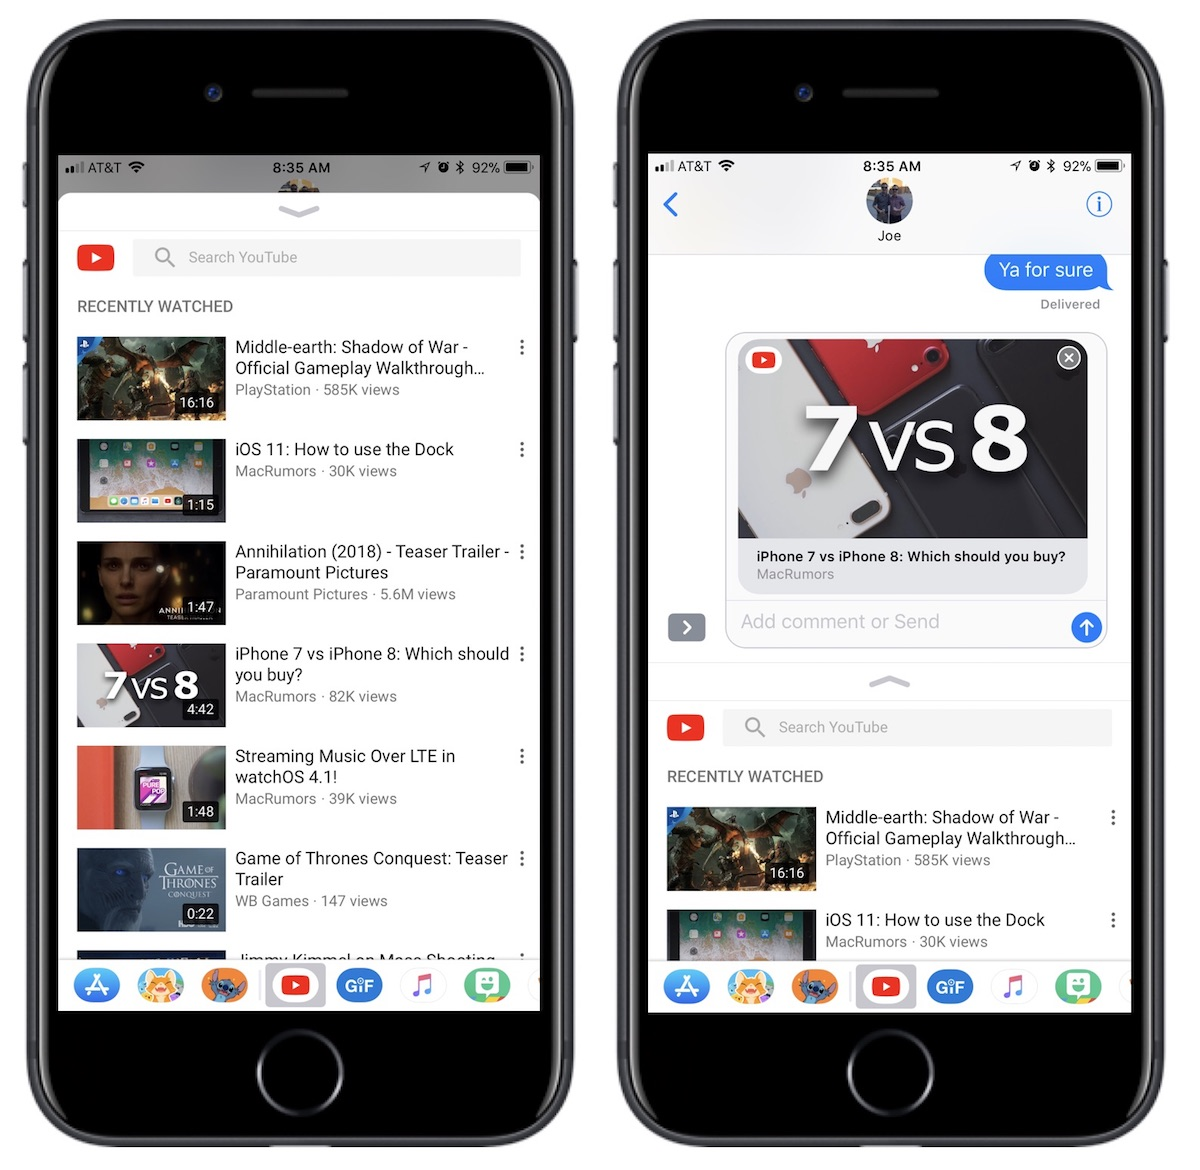 f7c781a9eda After sharing the video, YouTube links work the same as they did before,  with the ability to watch the videos directly within Messages without  having to ...